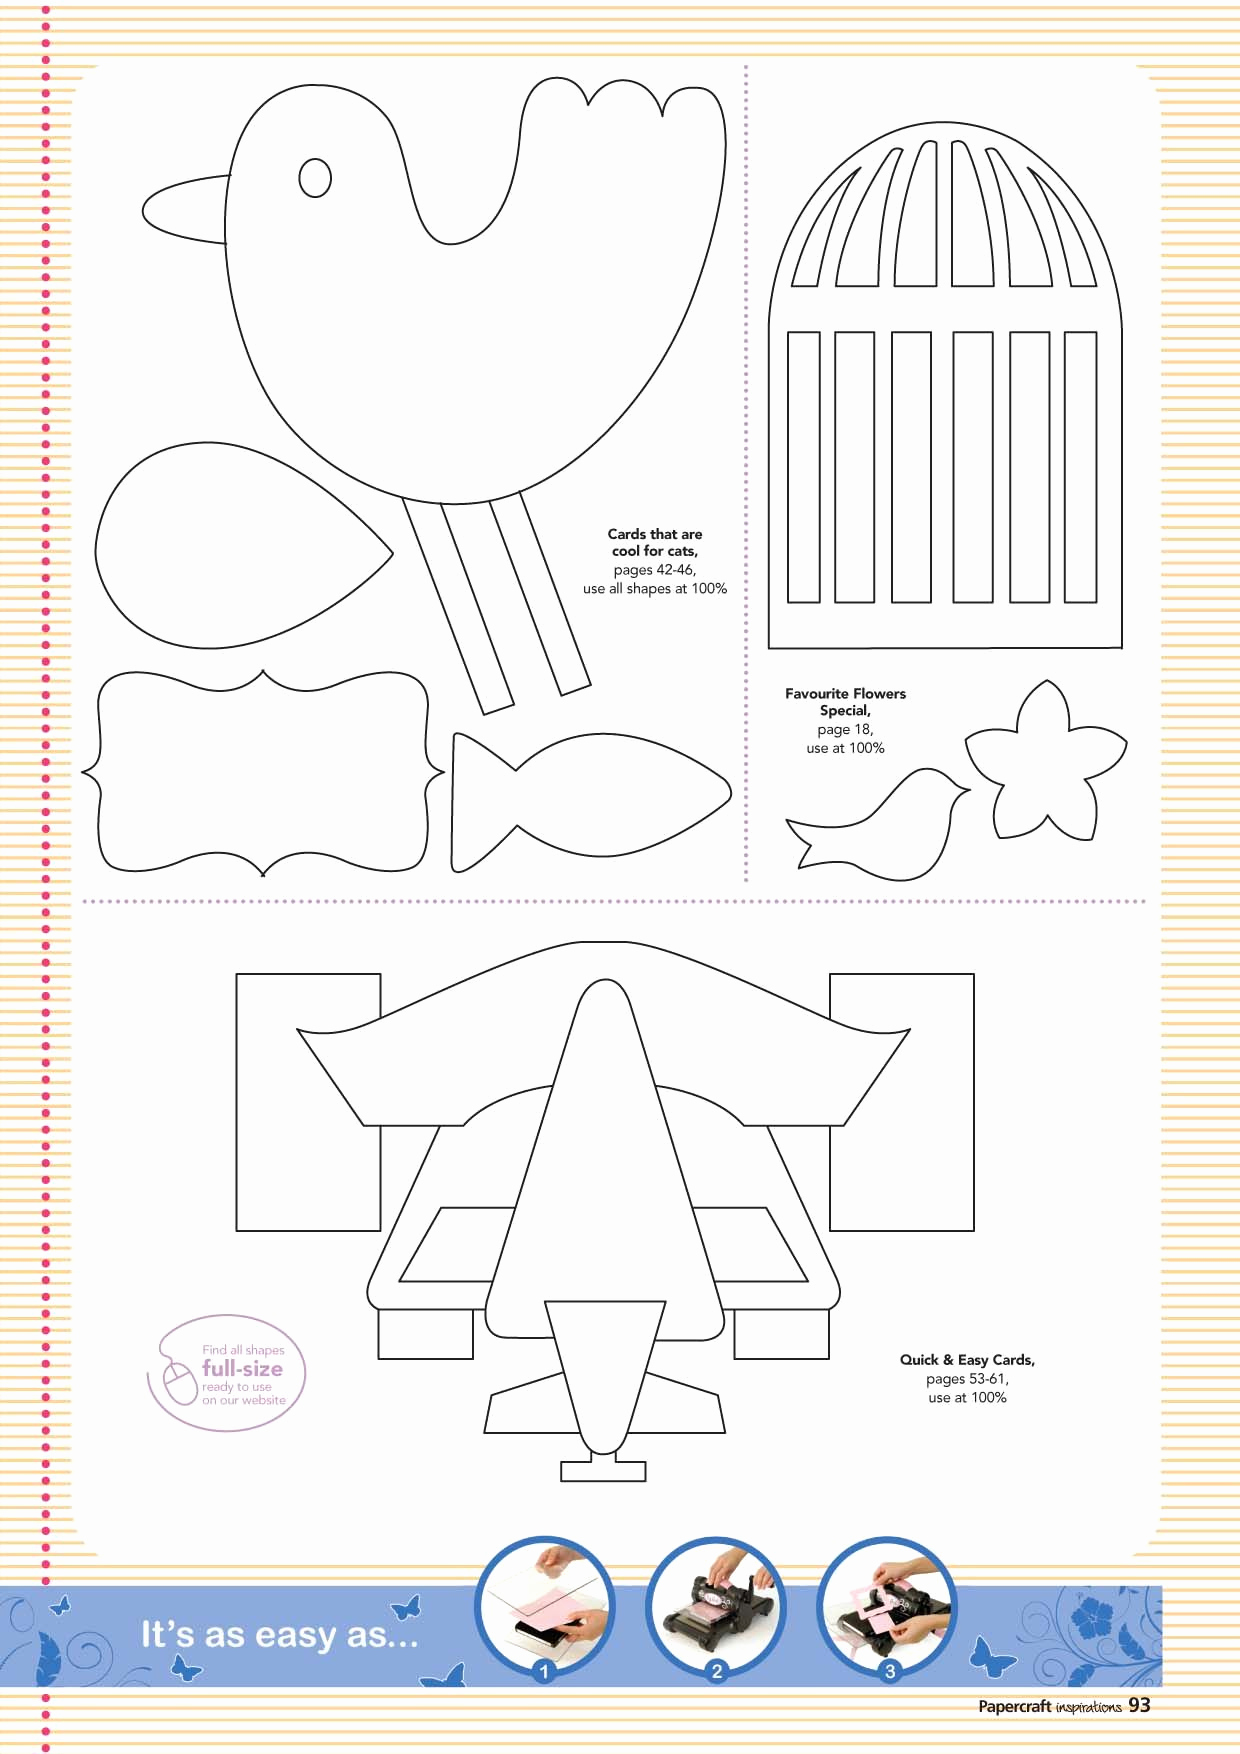 Paper Cut Outs Templates Unique Paper Crafts Templates